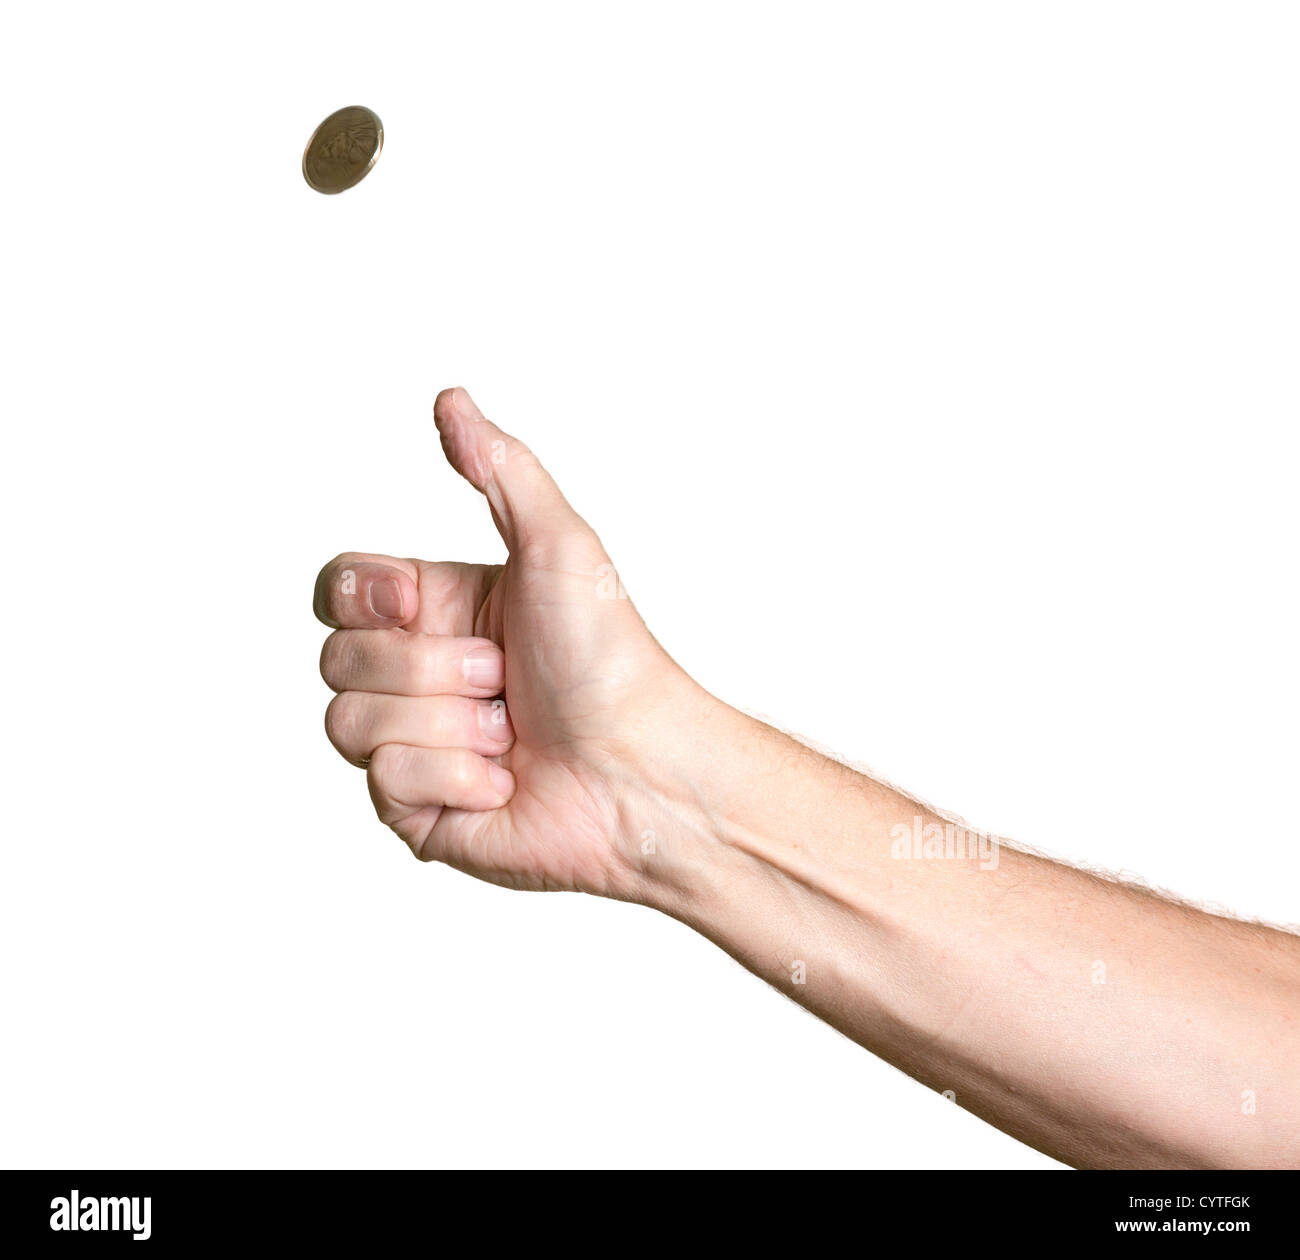 Male bare arm with hand tossing a golden USA coin in the air and spinning towards heads - Stock Image